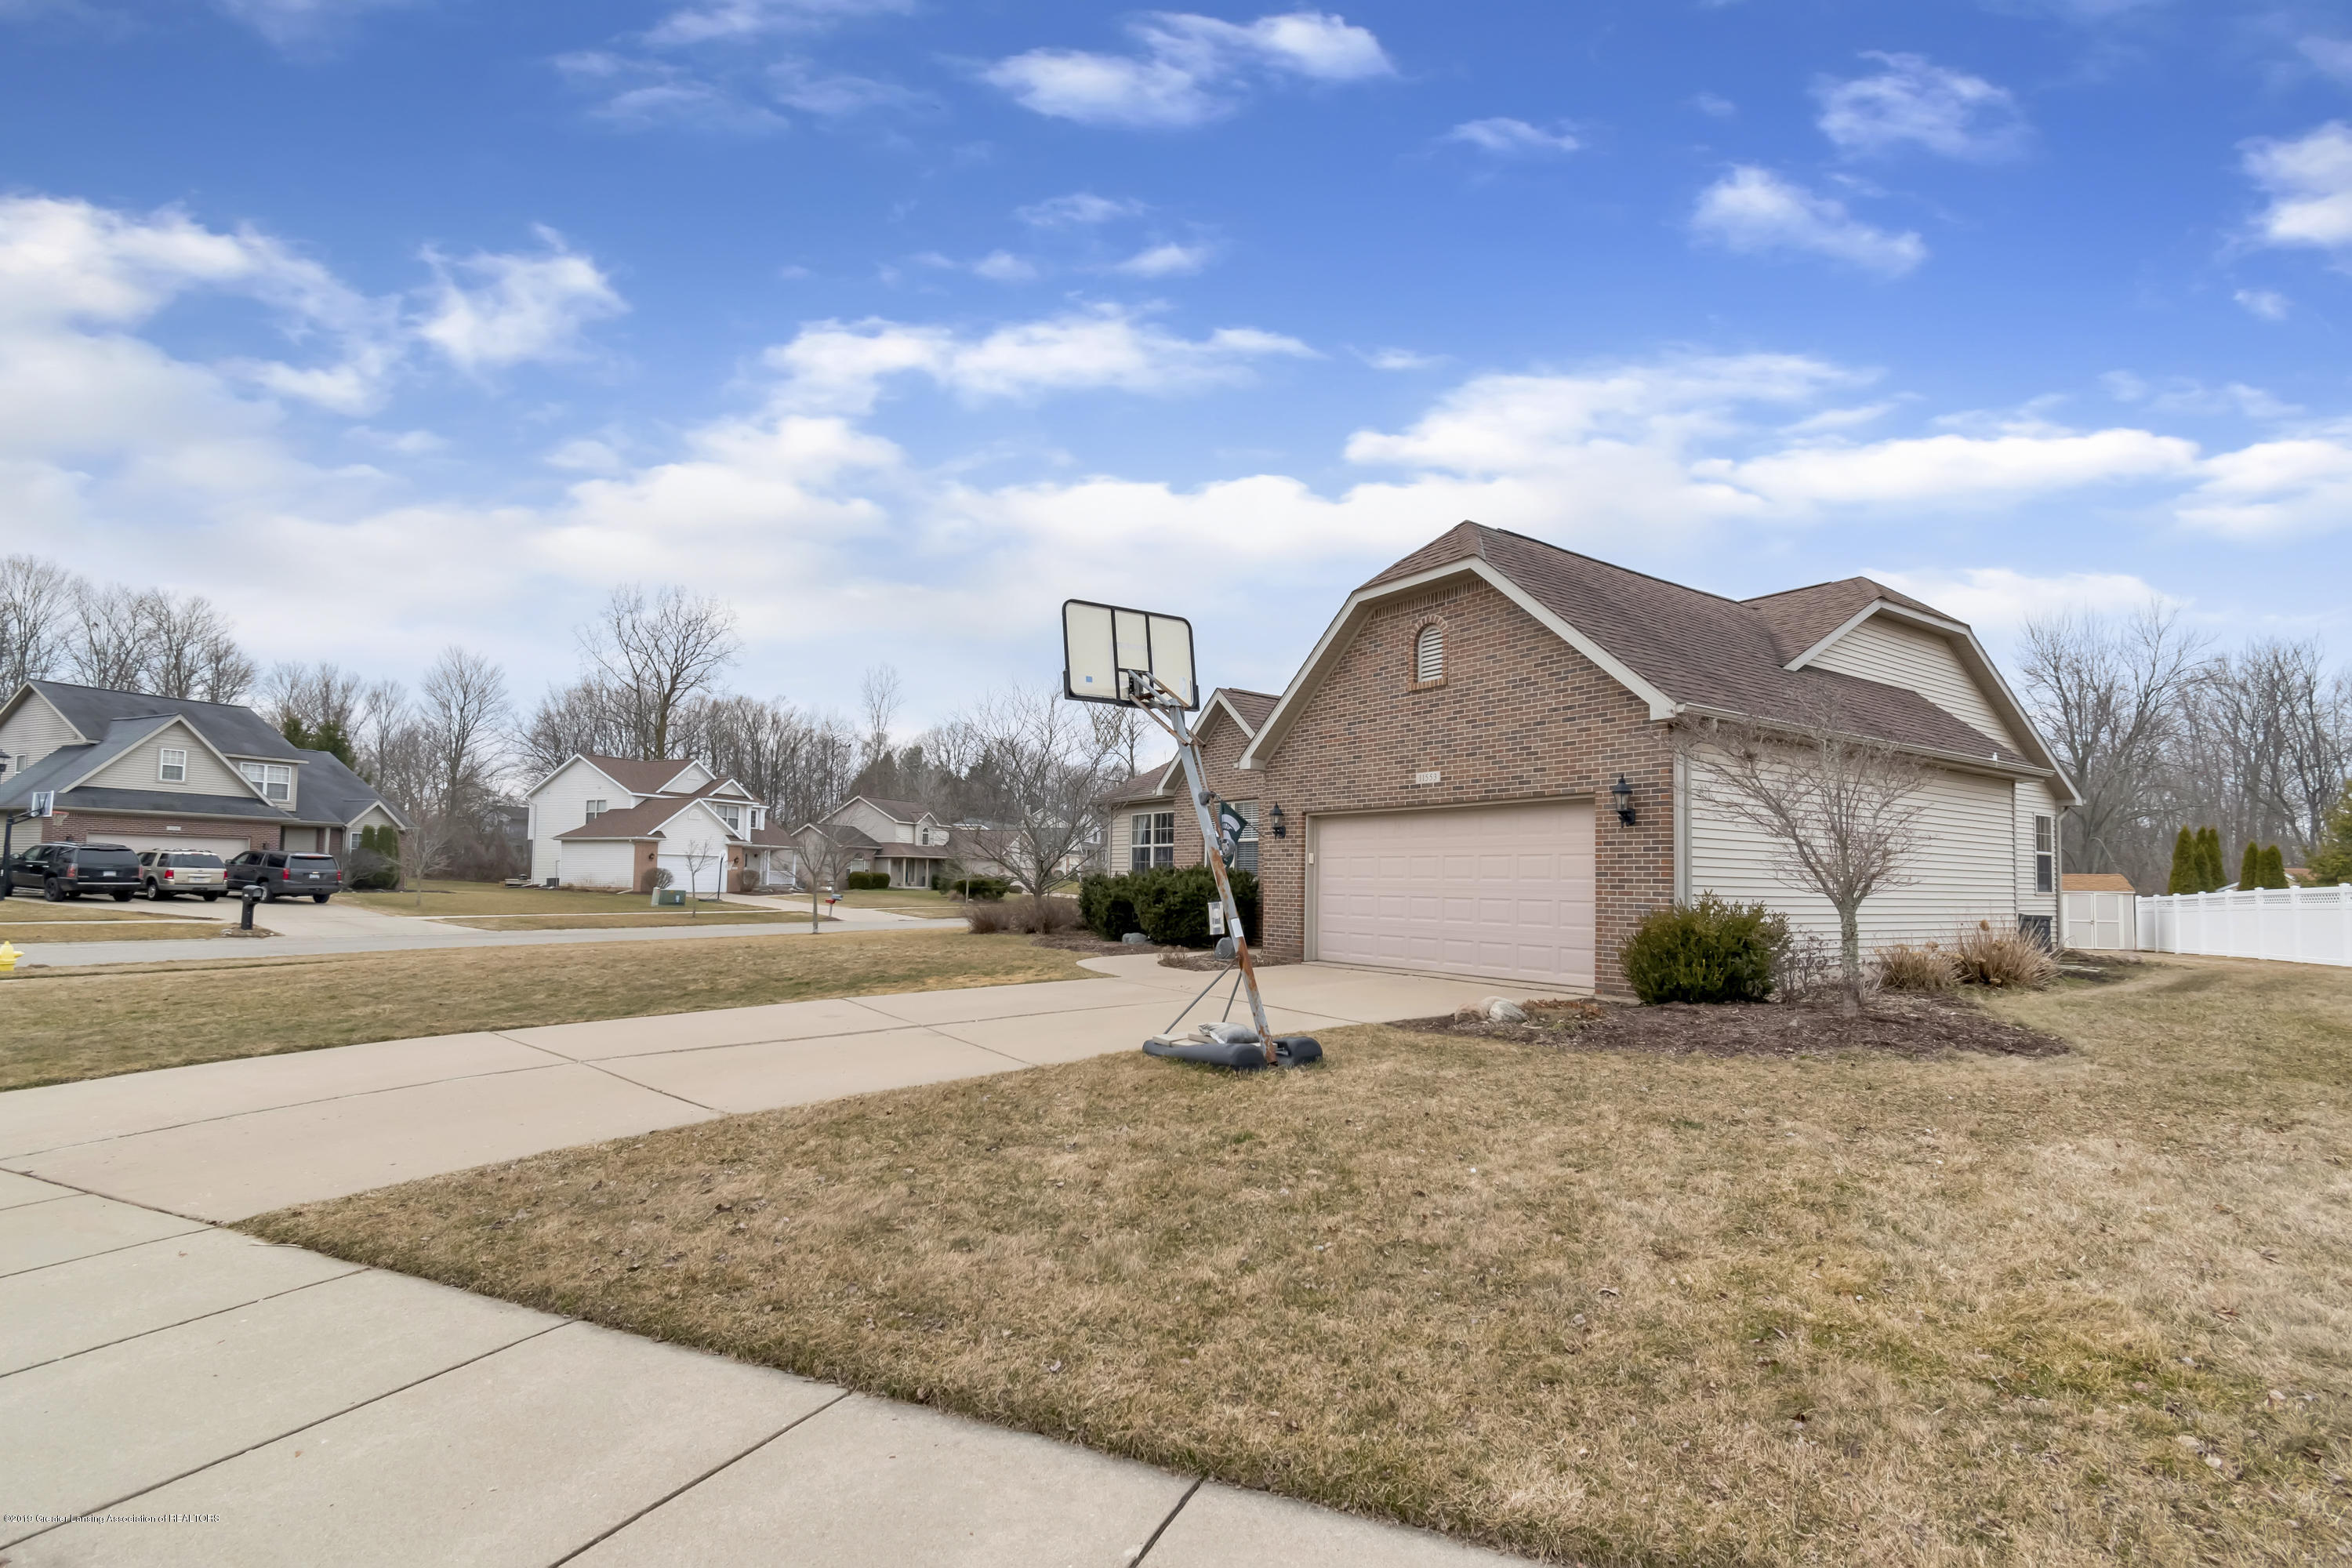 11553 Gold Fields Dr - 11553-Gold-Fields-Dr-Grand-Ledge-MI-wind - 4